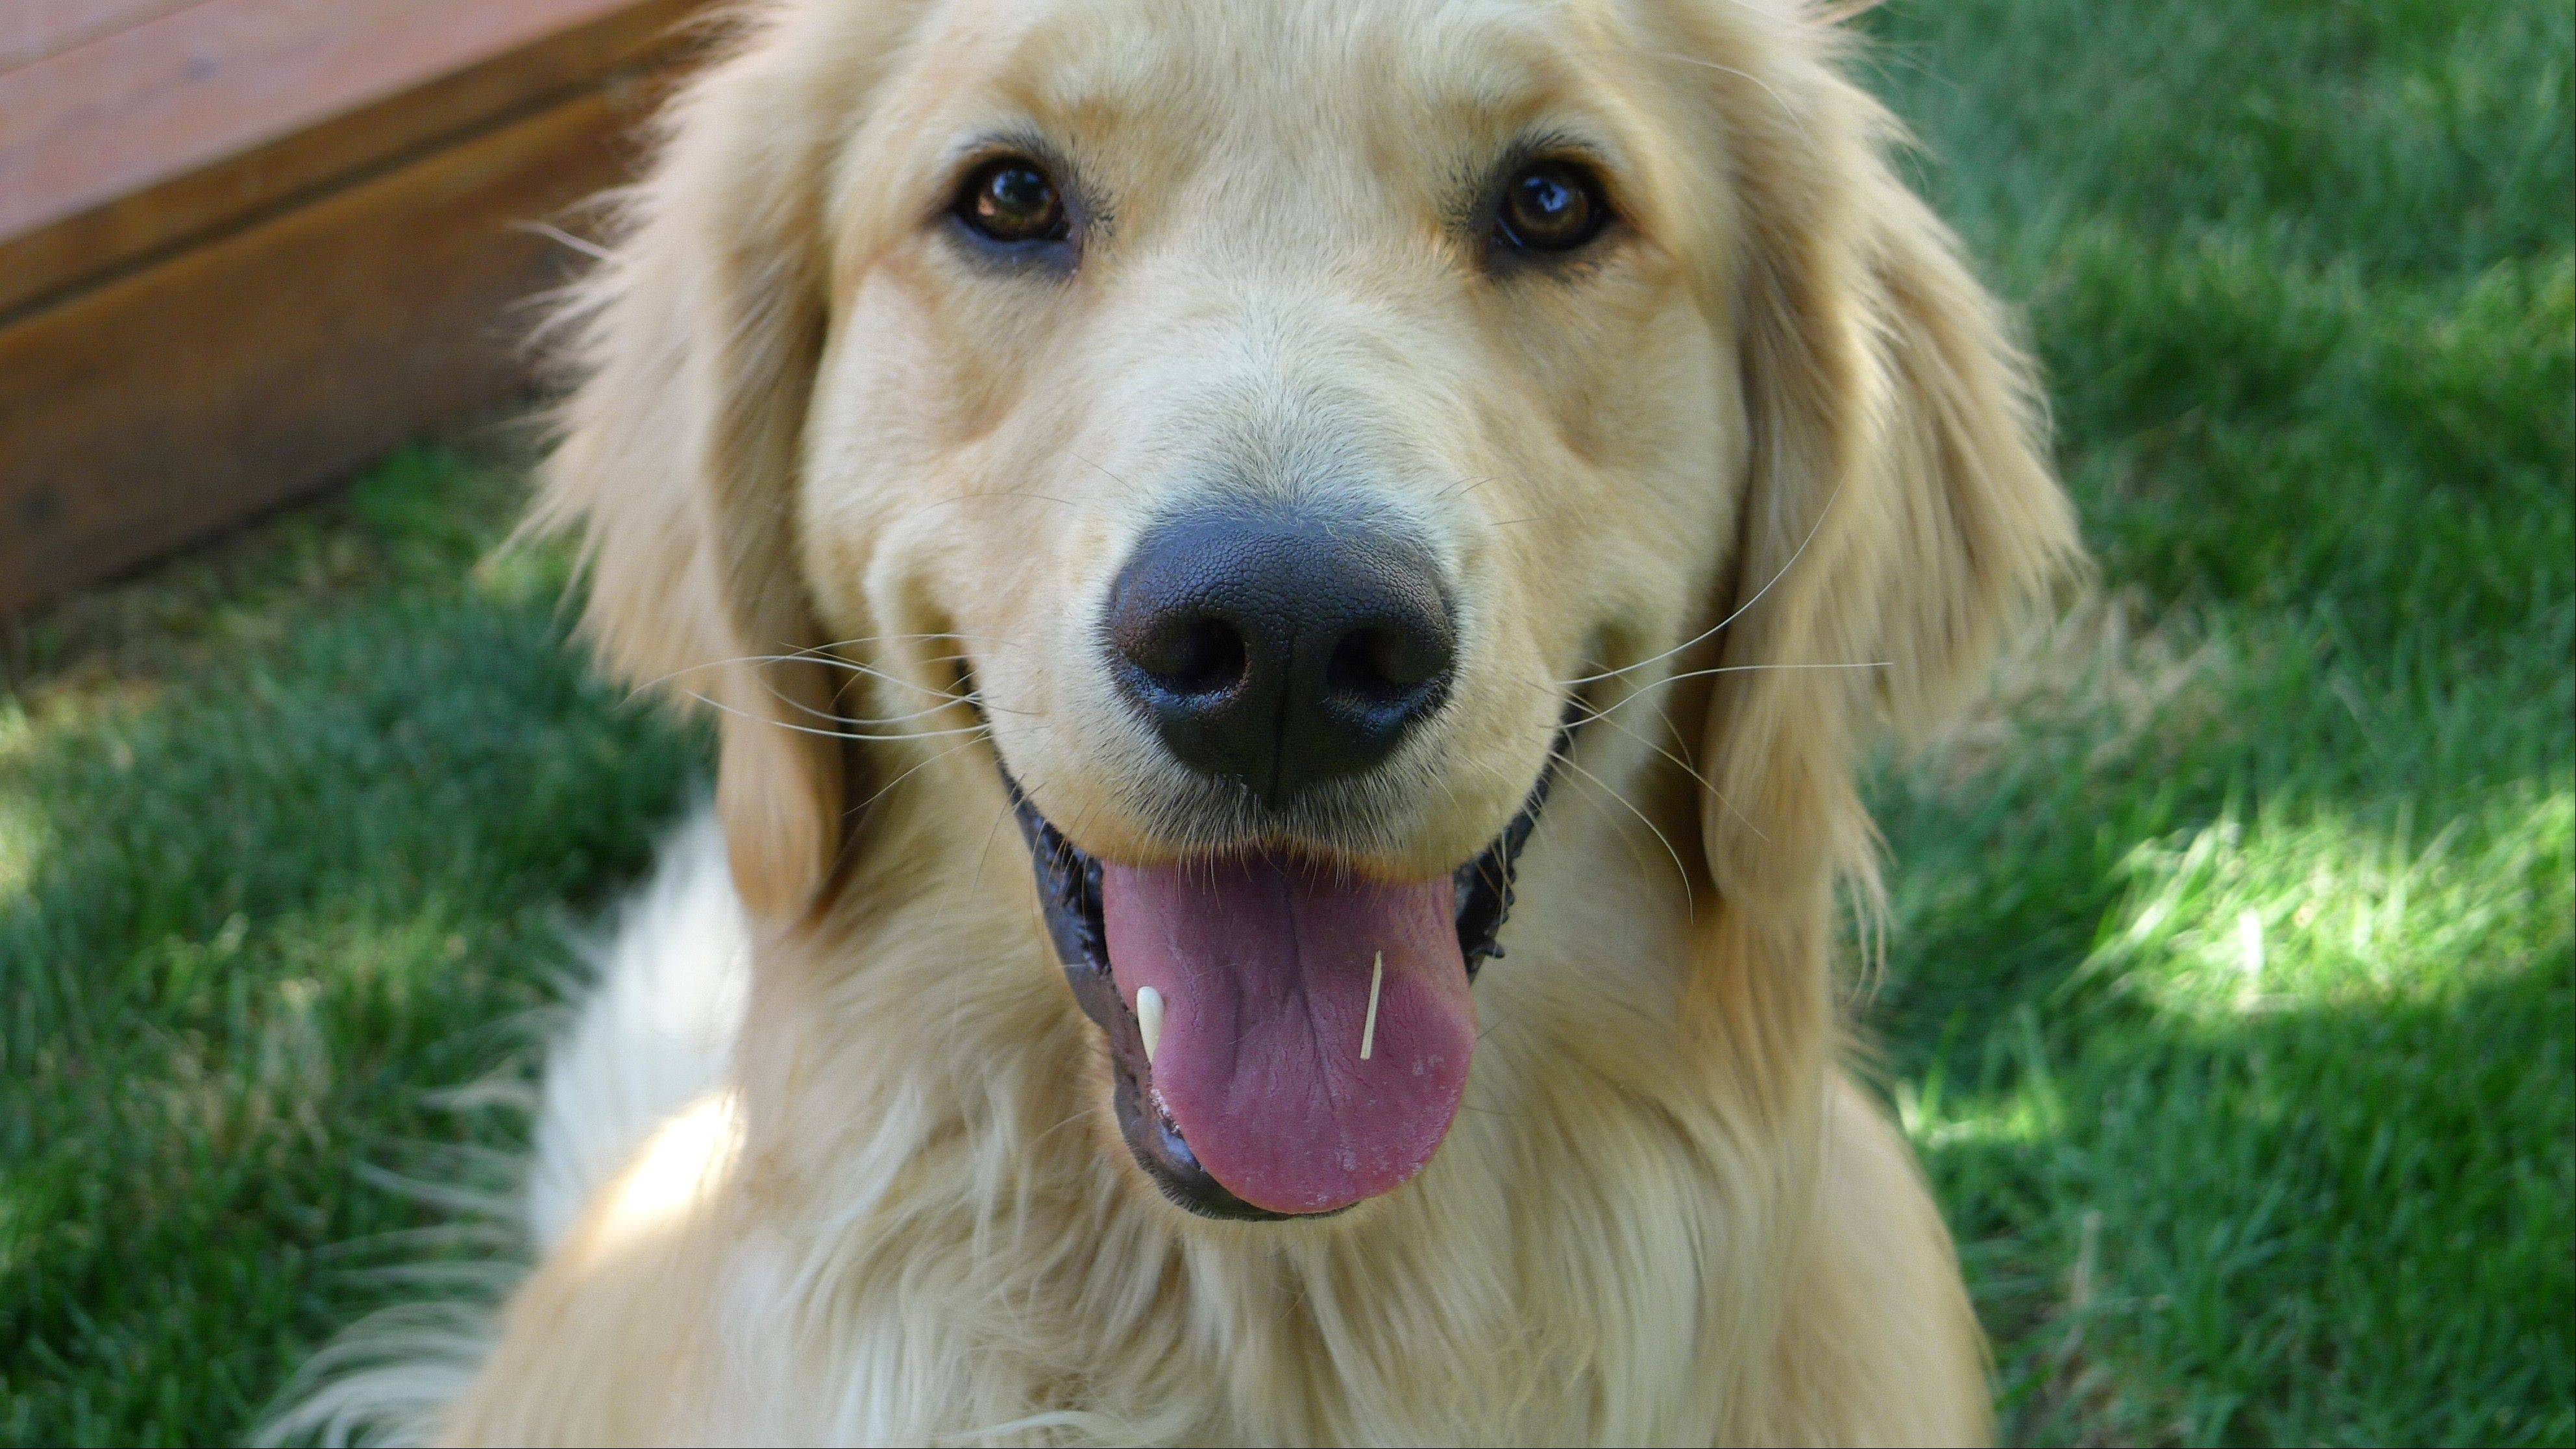 Golden retriever, Louie Mesinger, in his backyard in Boulder, Colo. The Golden Retriever Lifetime Study will be the largest and longest study of dogs ever conducted.